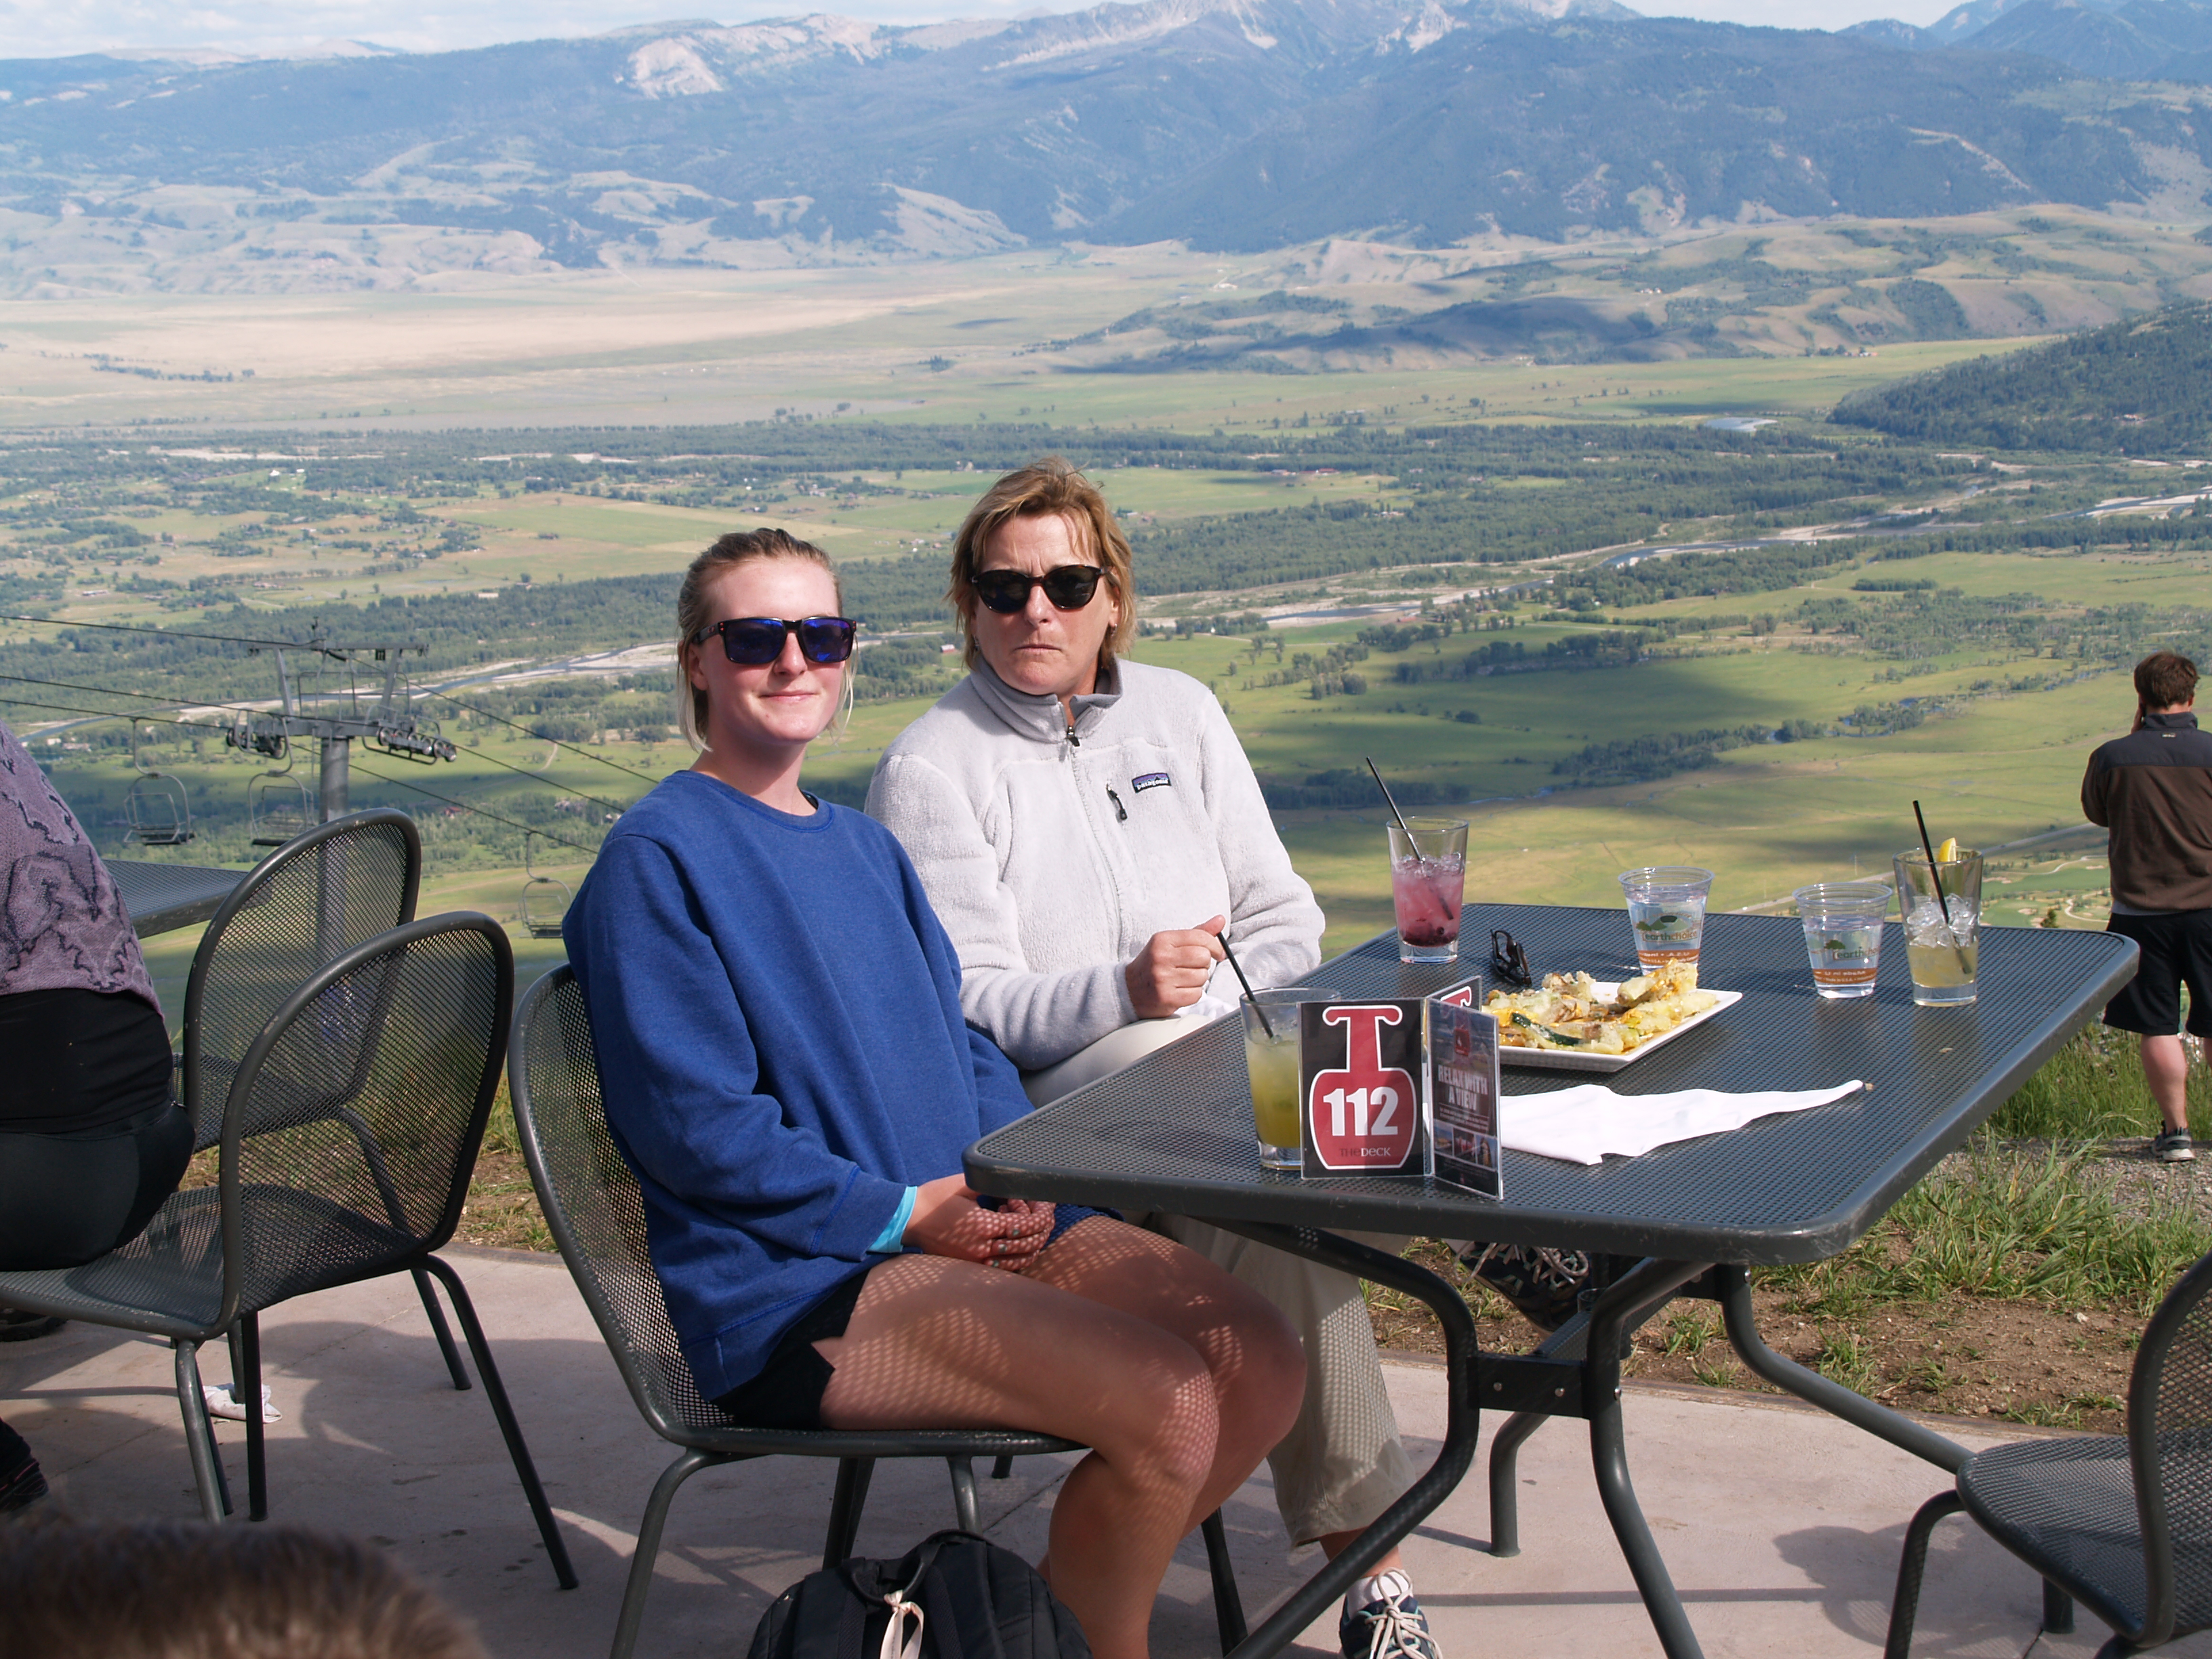 relaxing on the patio, part way up the mountain